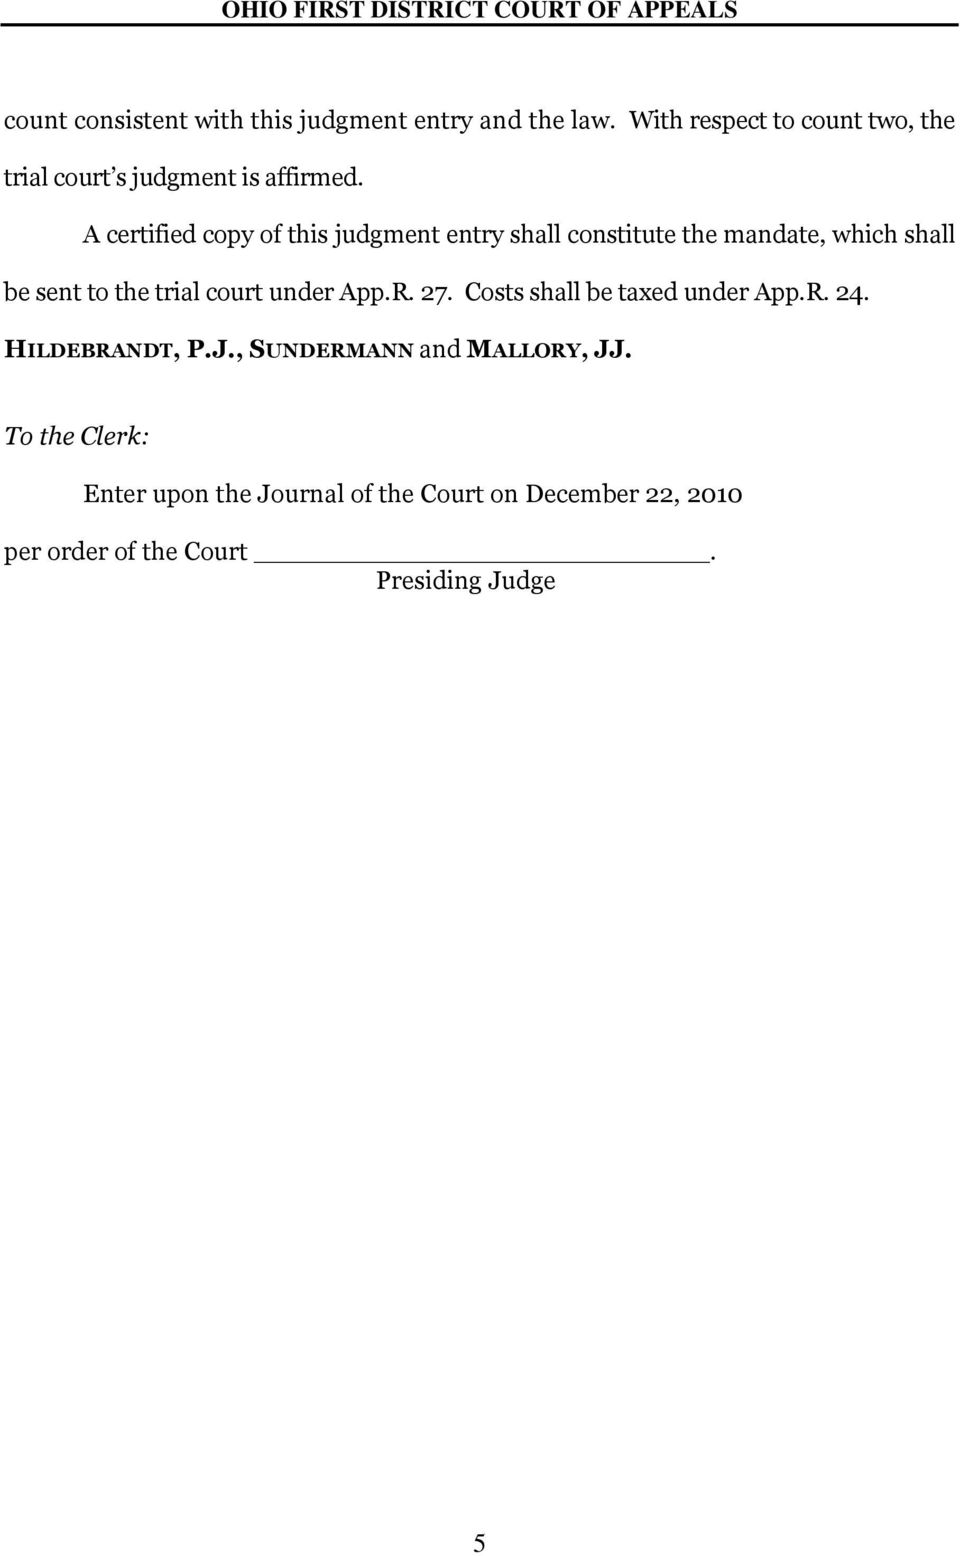 A certified copy of this judgment entry shall constitute the mandate, which shall be sent to the trial court